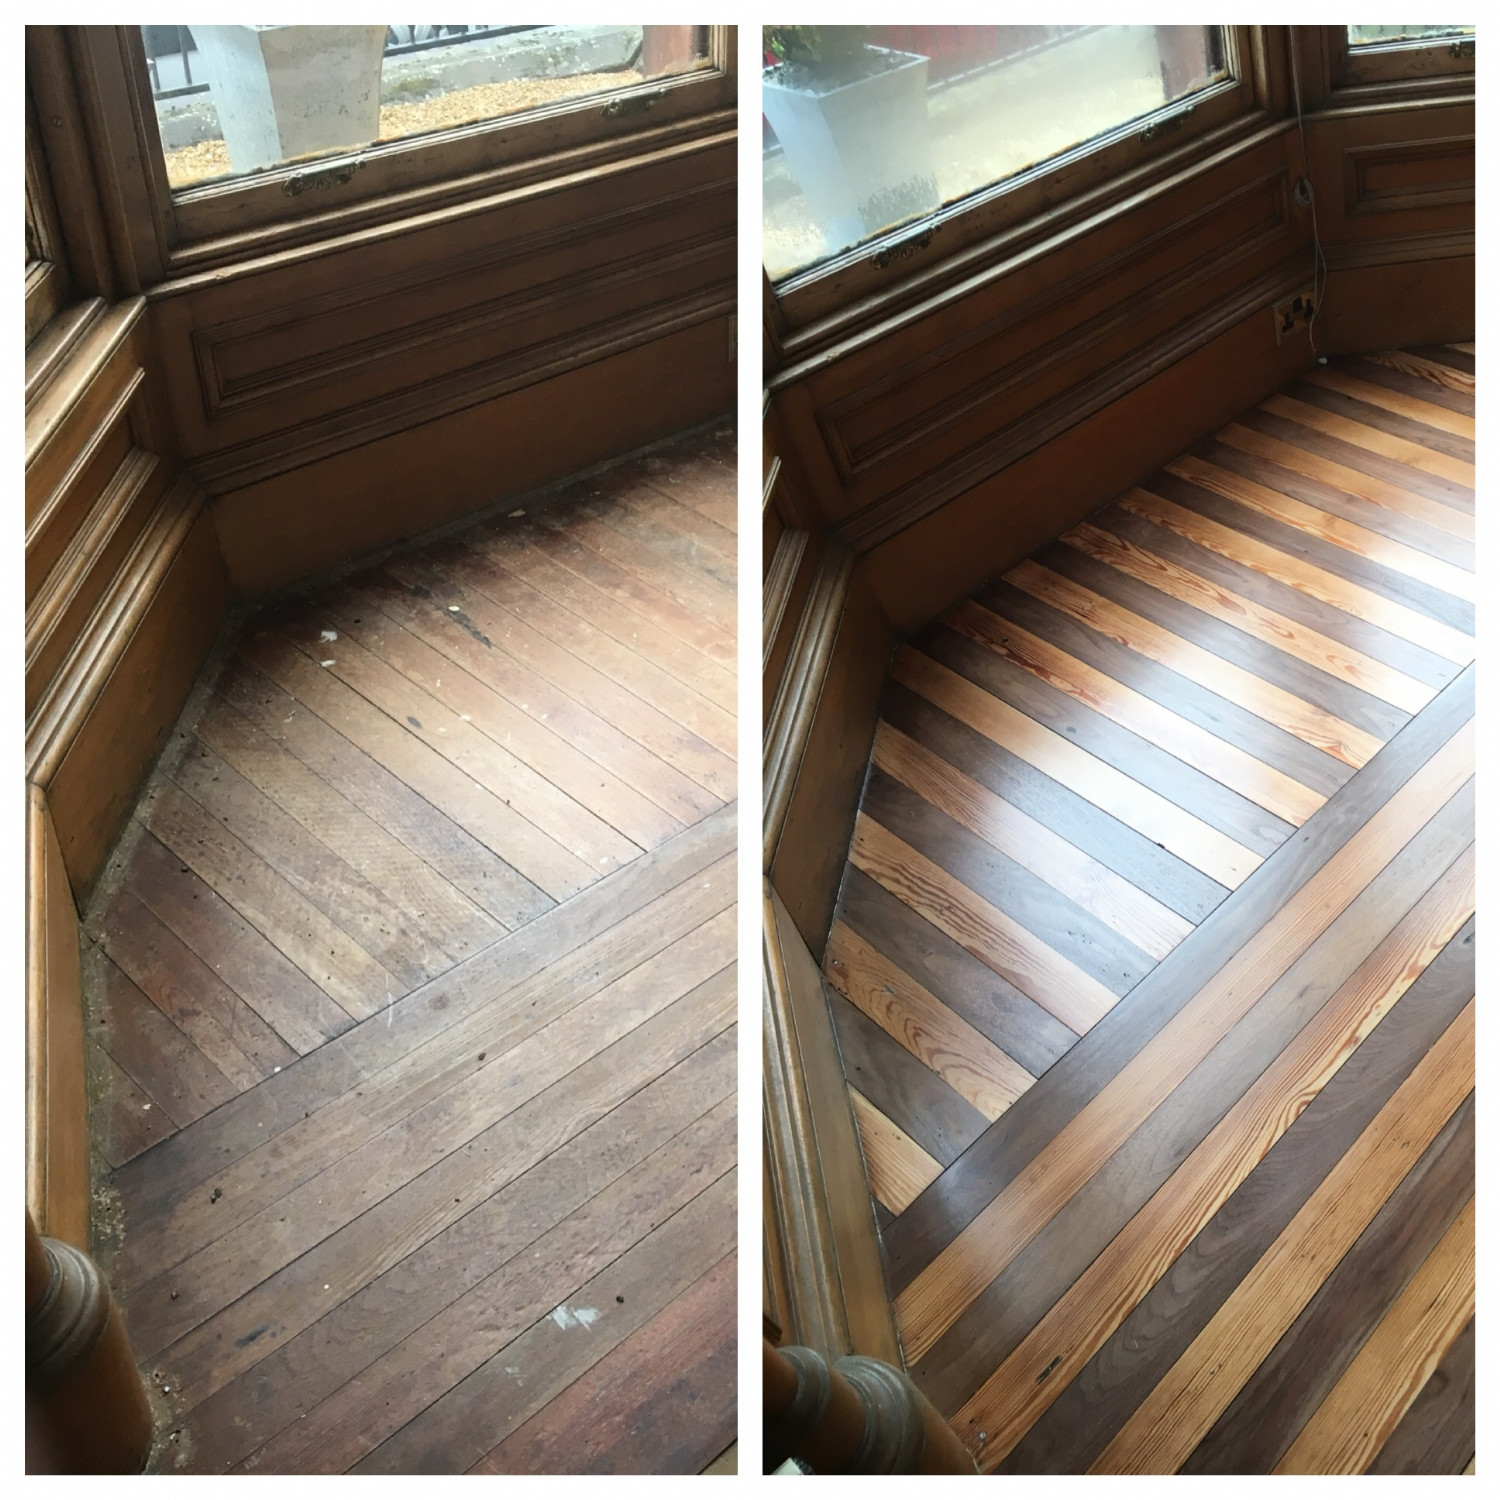 hardwood floor contractors review of wood floor sanding in falkirk by avoca floorcare within wood floor sanding falkirk a· wood floor sanding falkirk